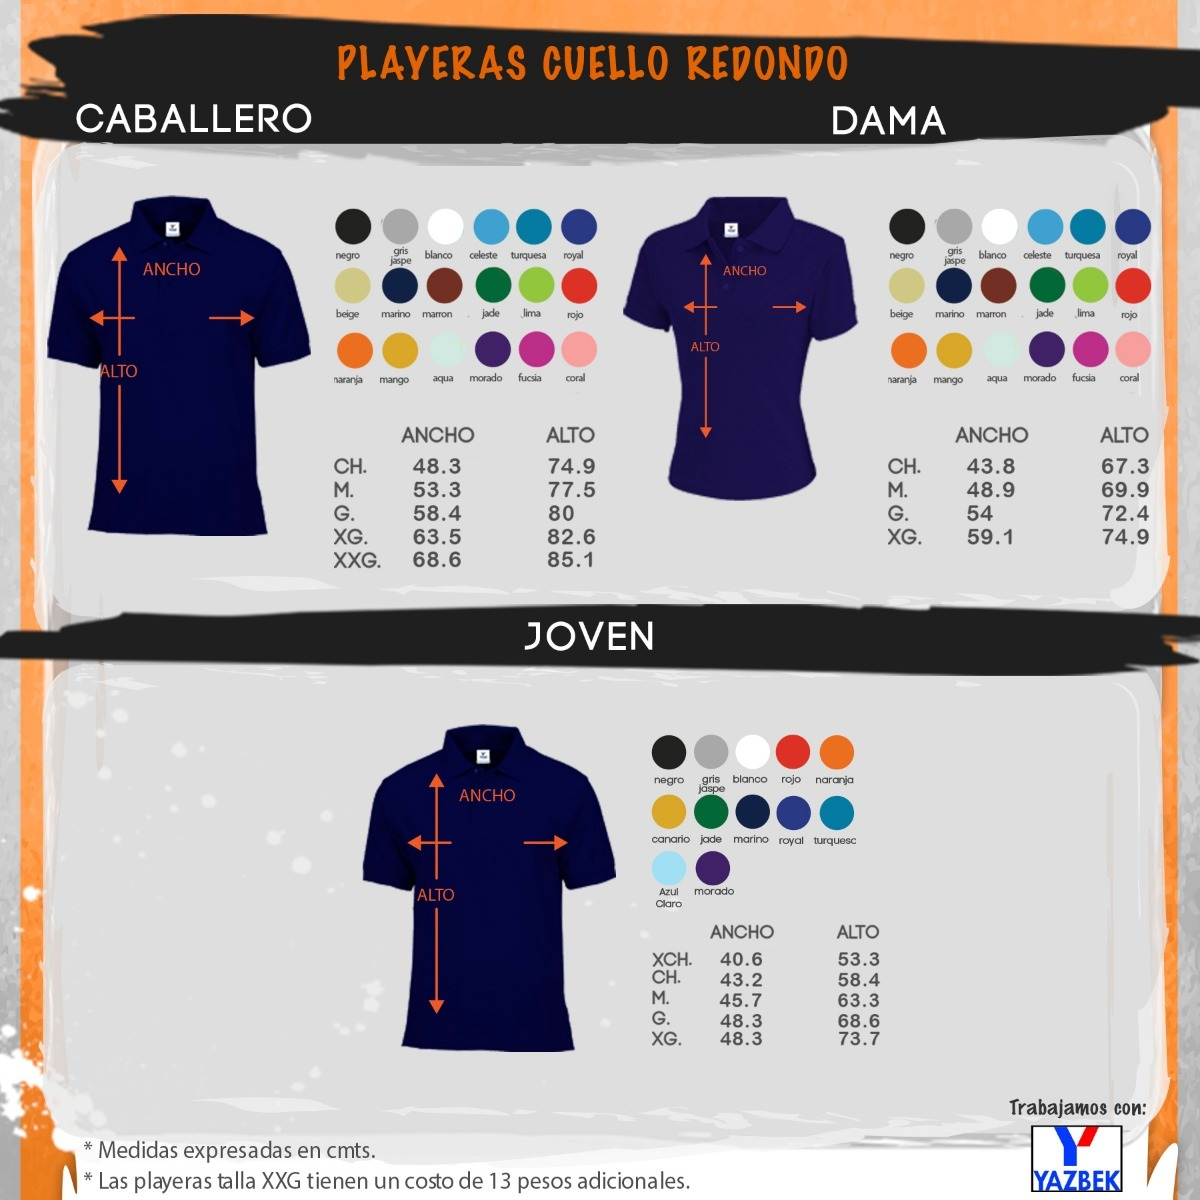 f2f6ee89f0465 Playeras Polo Yazbek Dama Y Caballero-18 Colores Disponibles ...